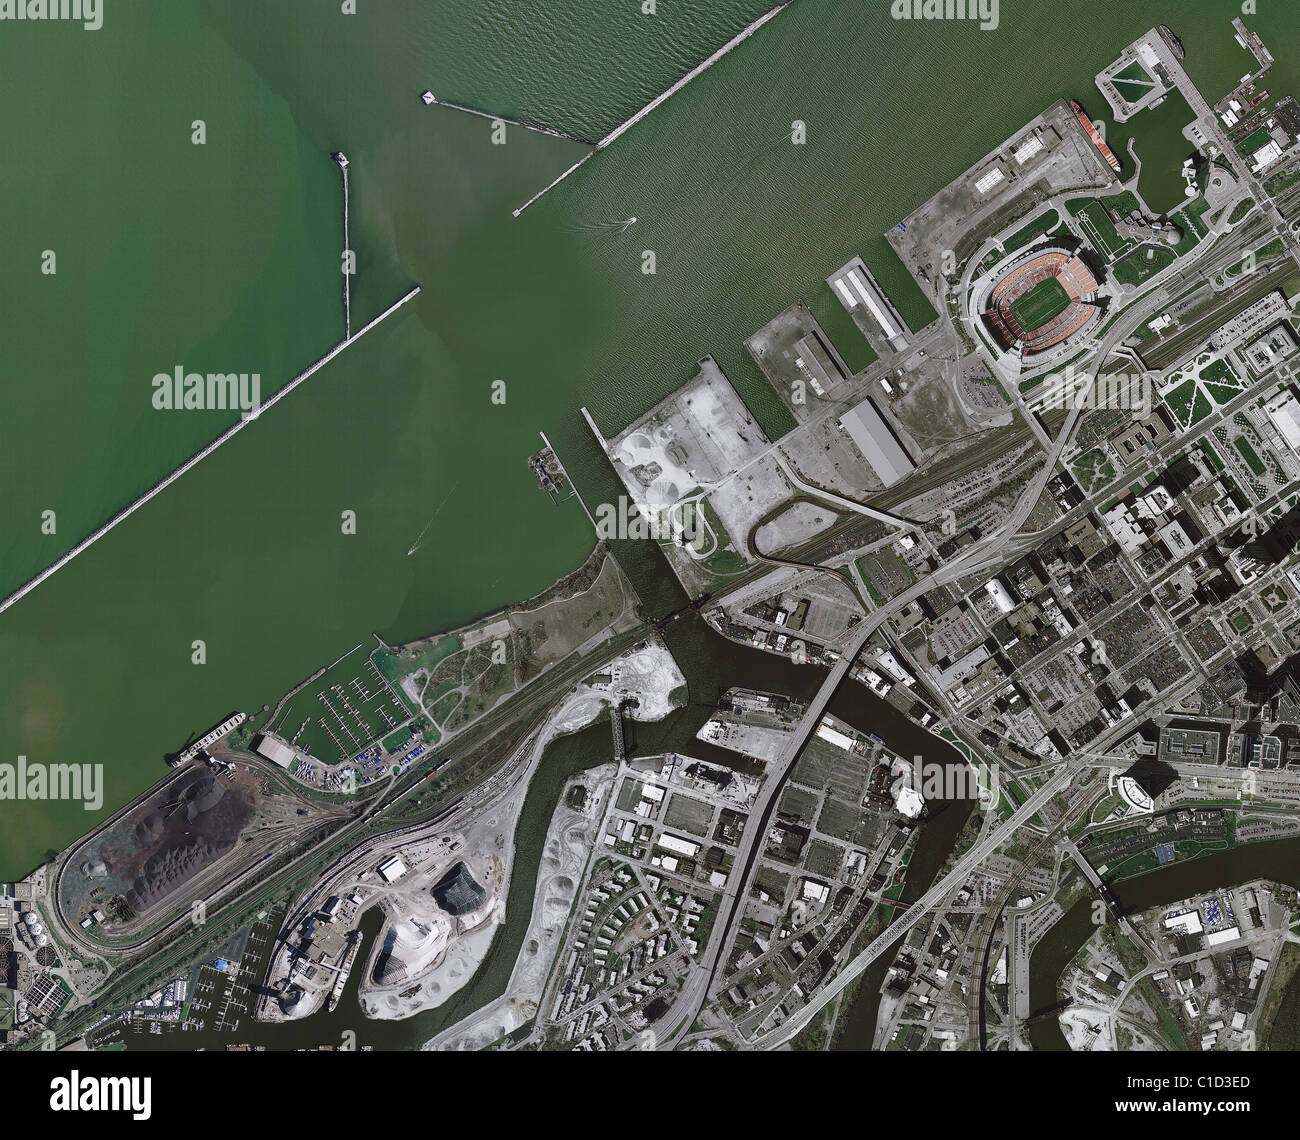 aerial map view above Port of Cleveland mouth of Cuyahoga river Ohio - Stock Image